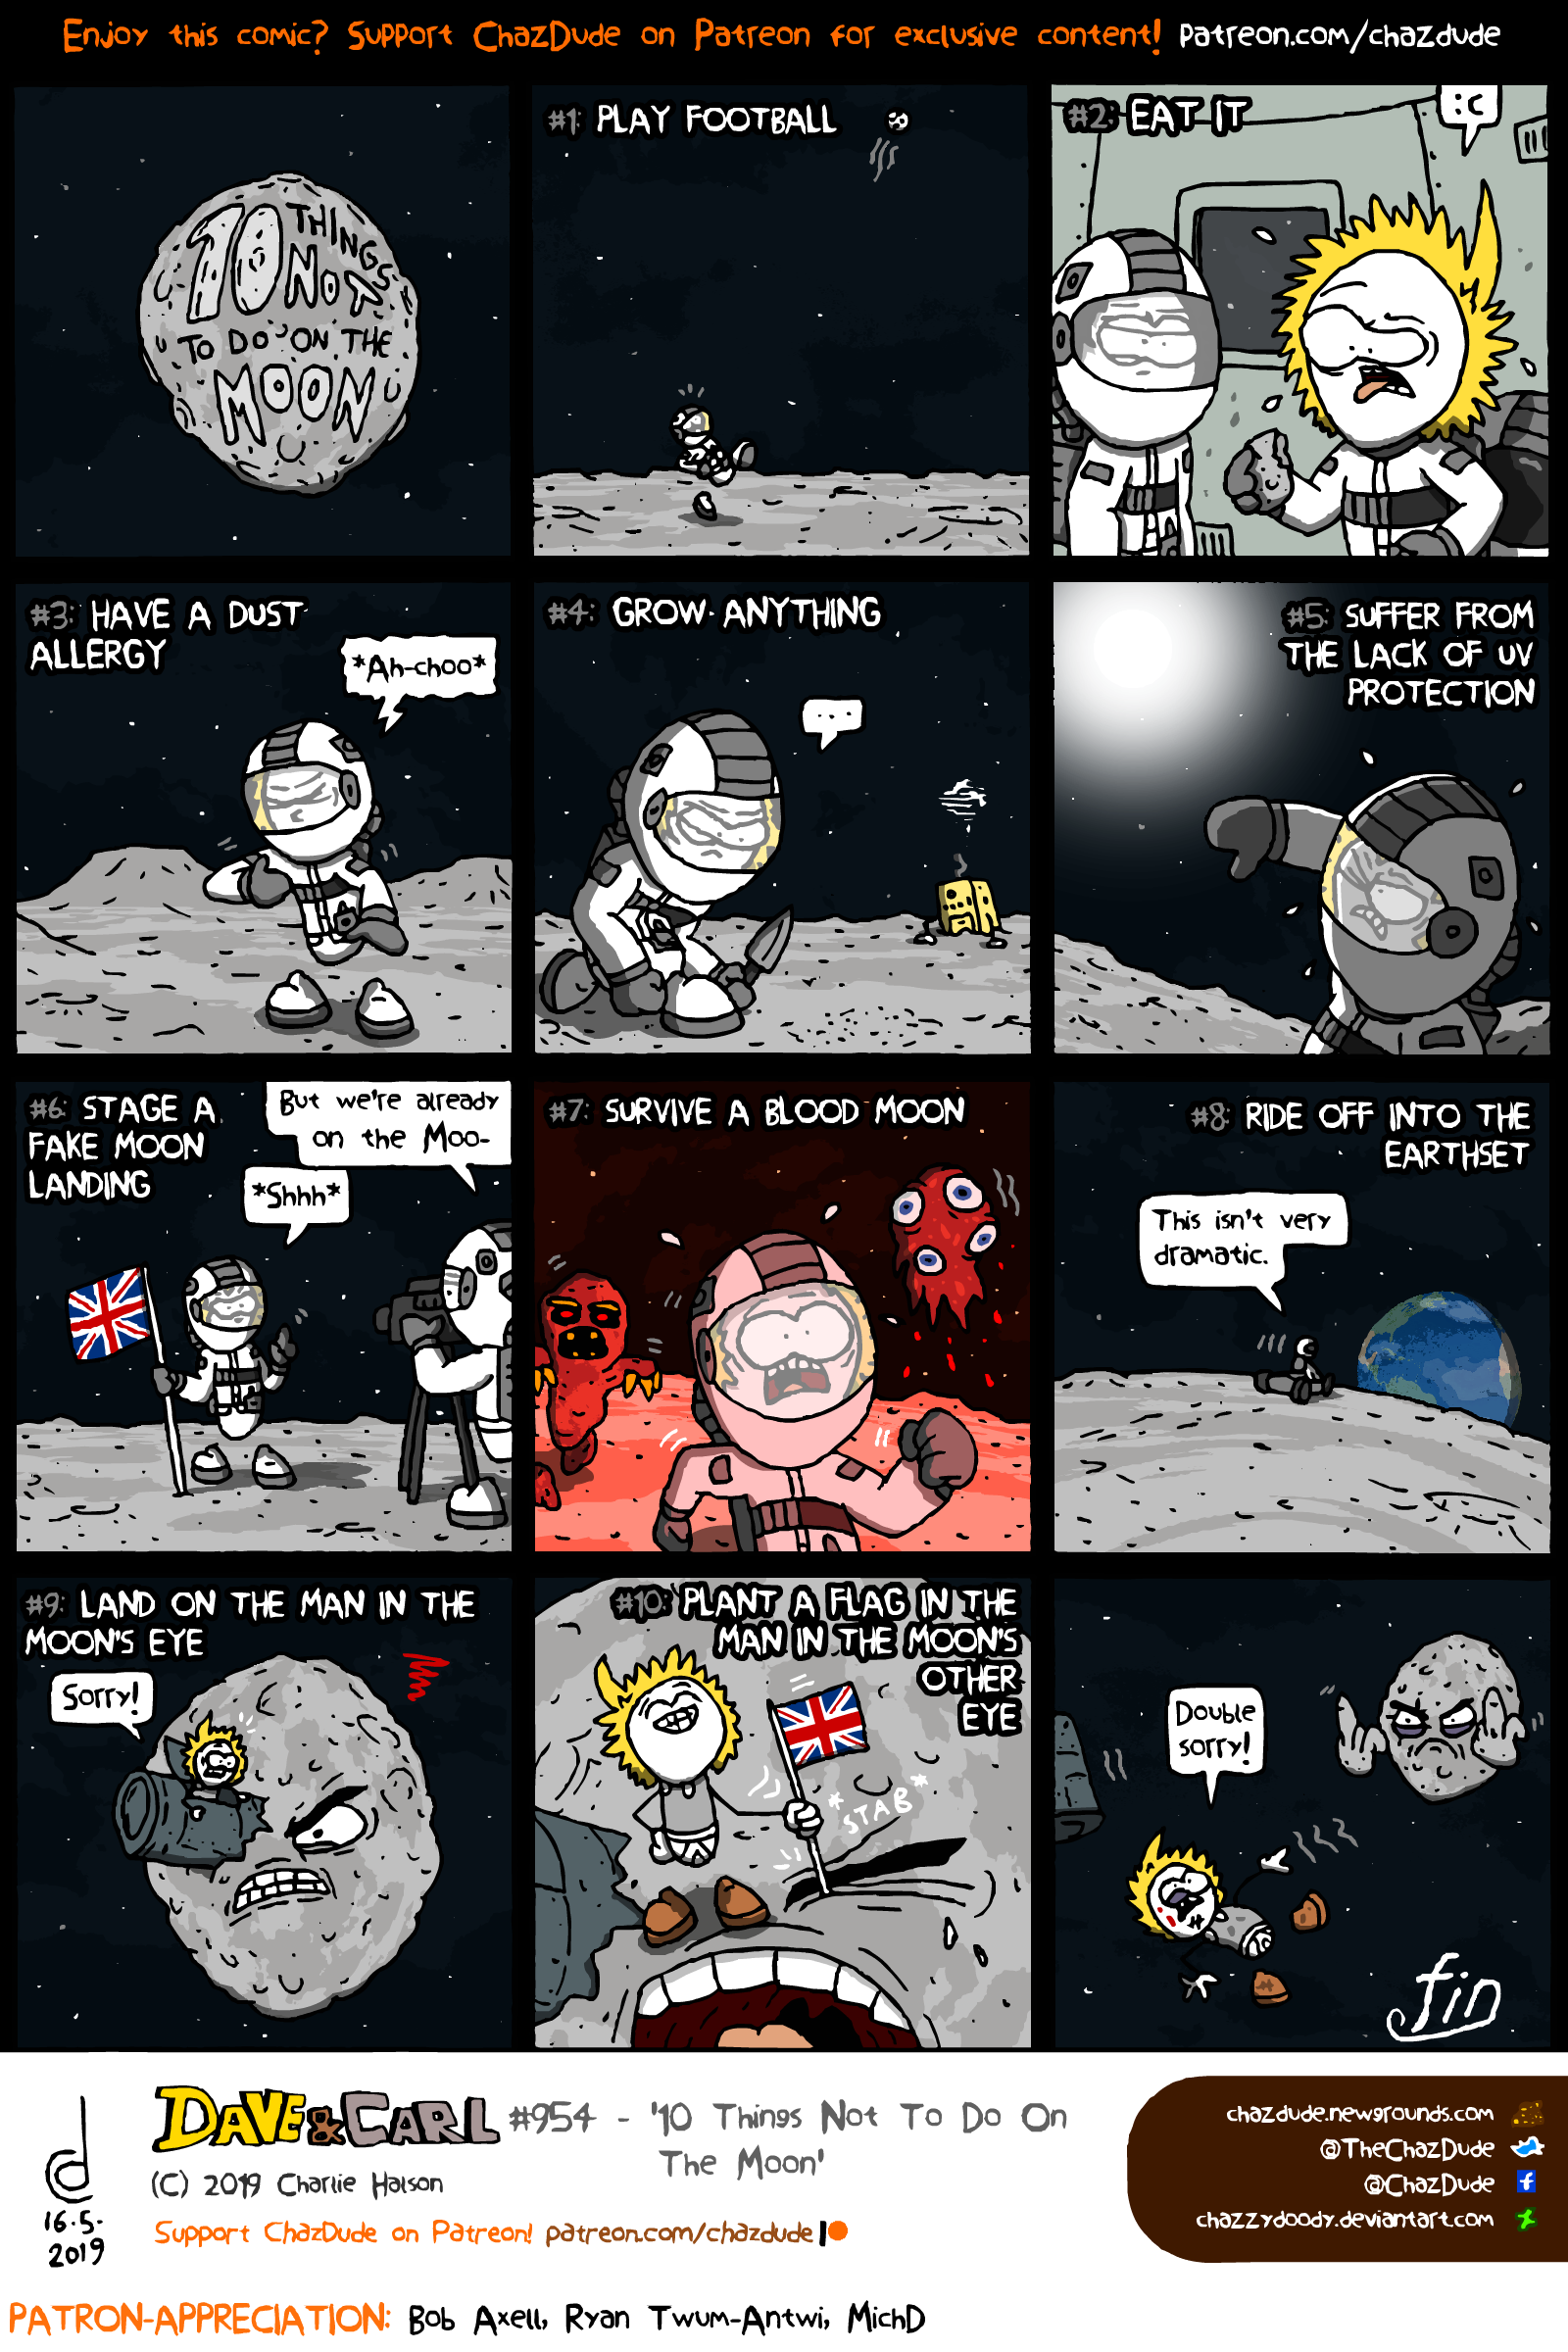 10 Things Not To Do On The Moon